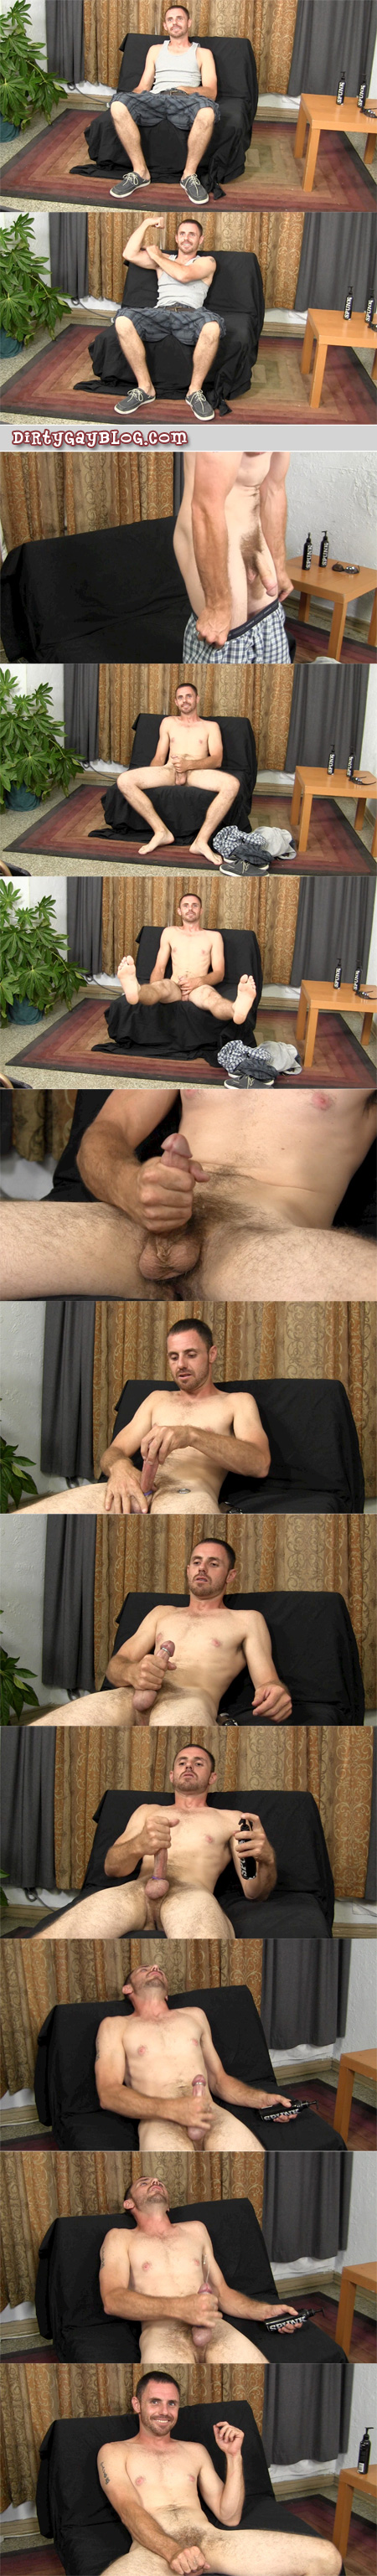 Scruffy straight guy jerking his swollen purple dick with a cockring and glans ring on.